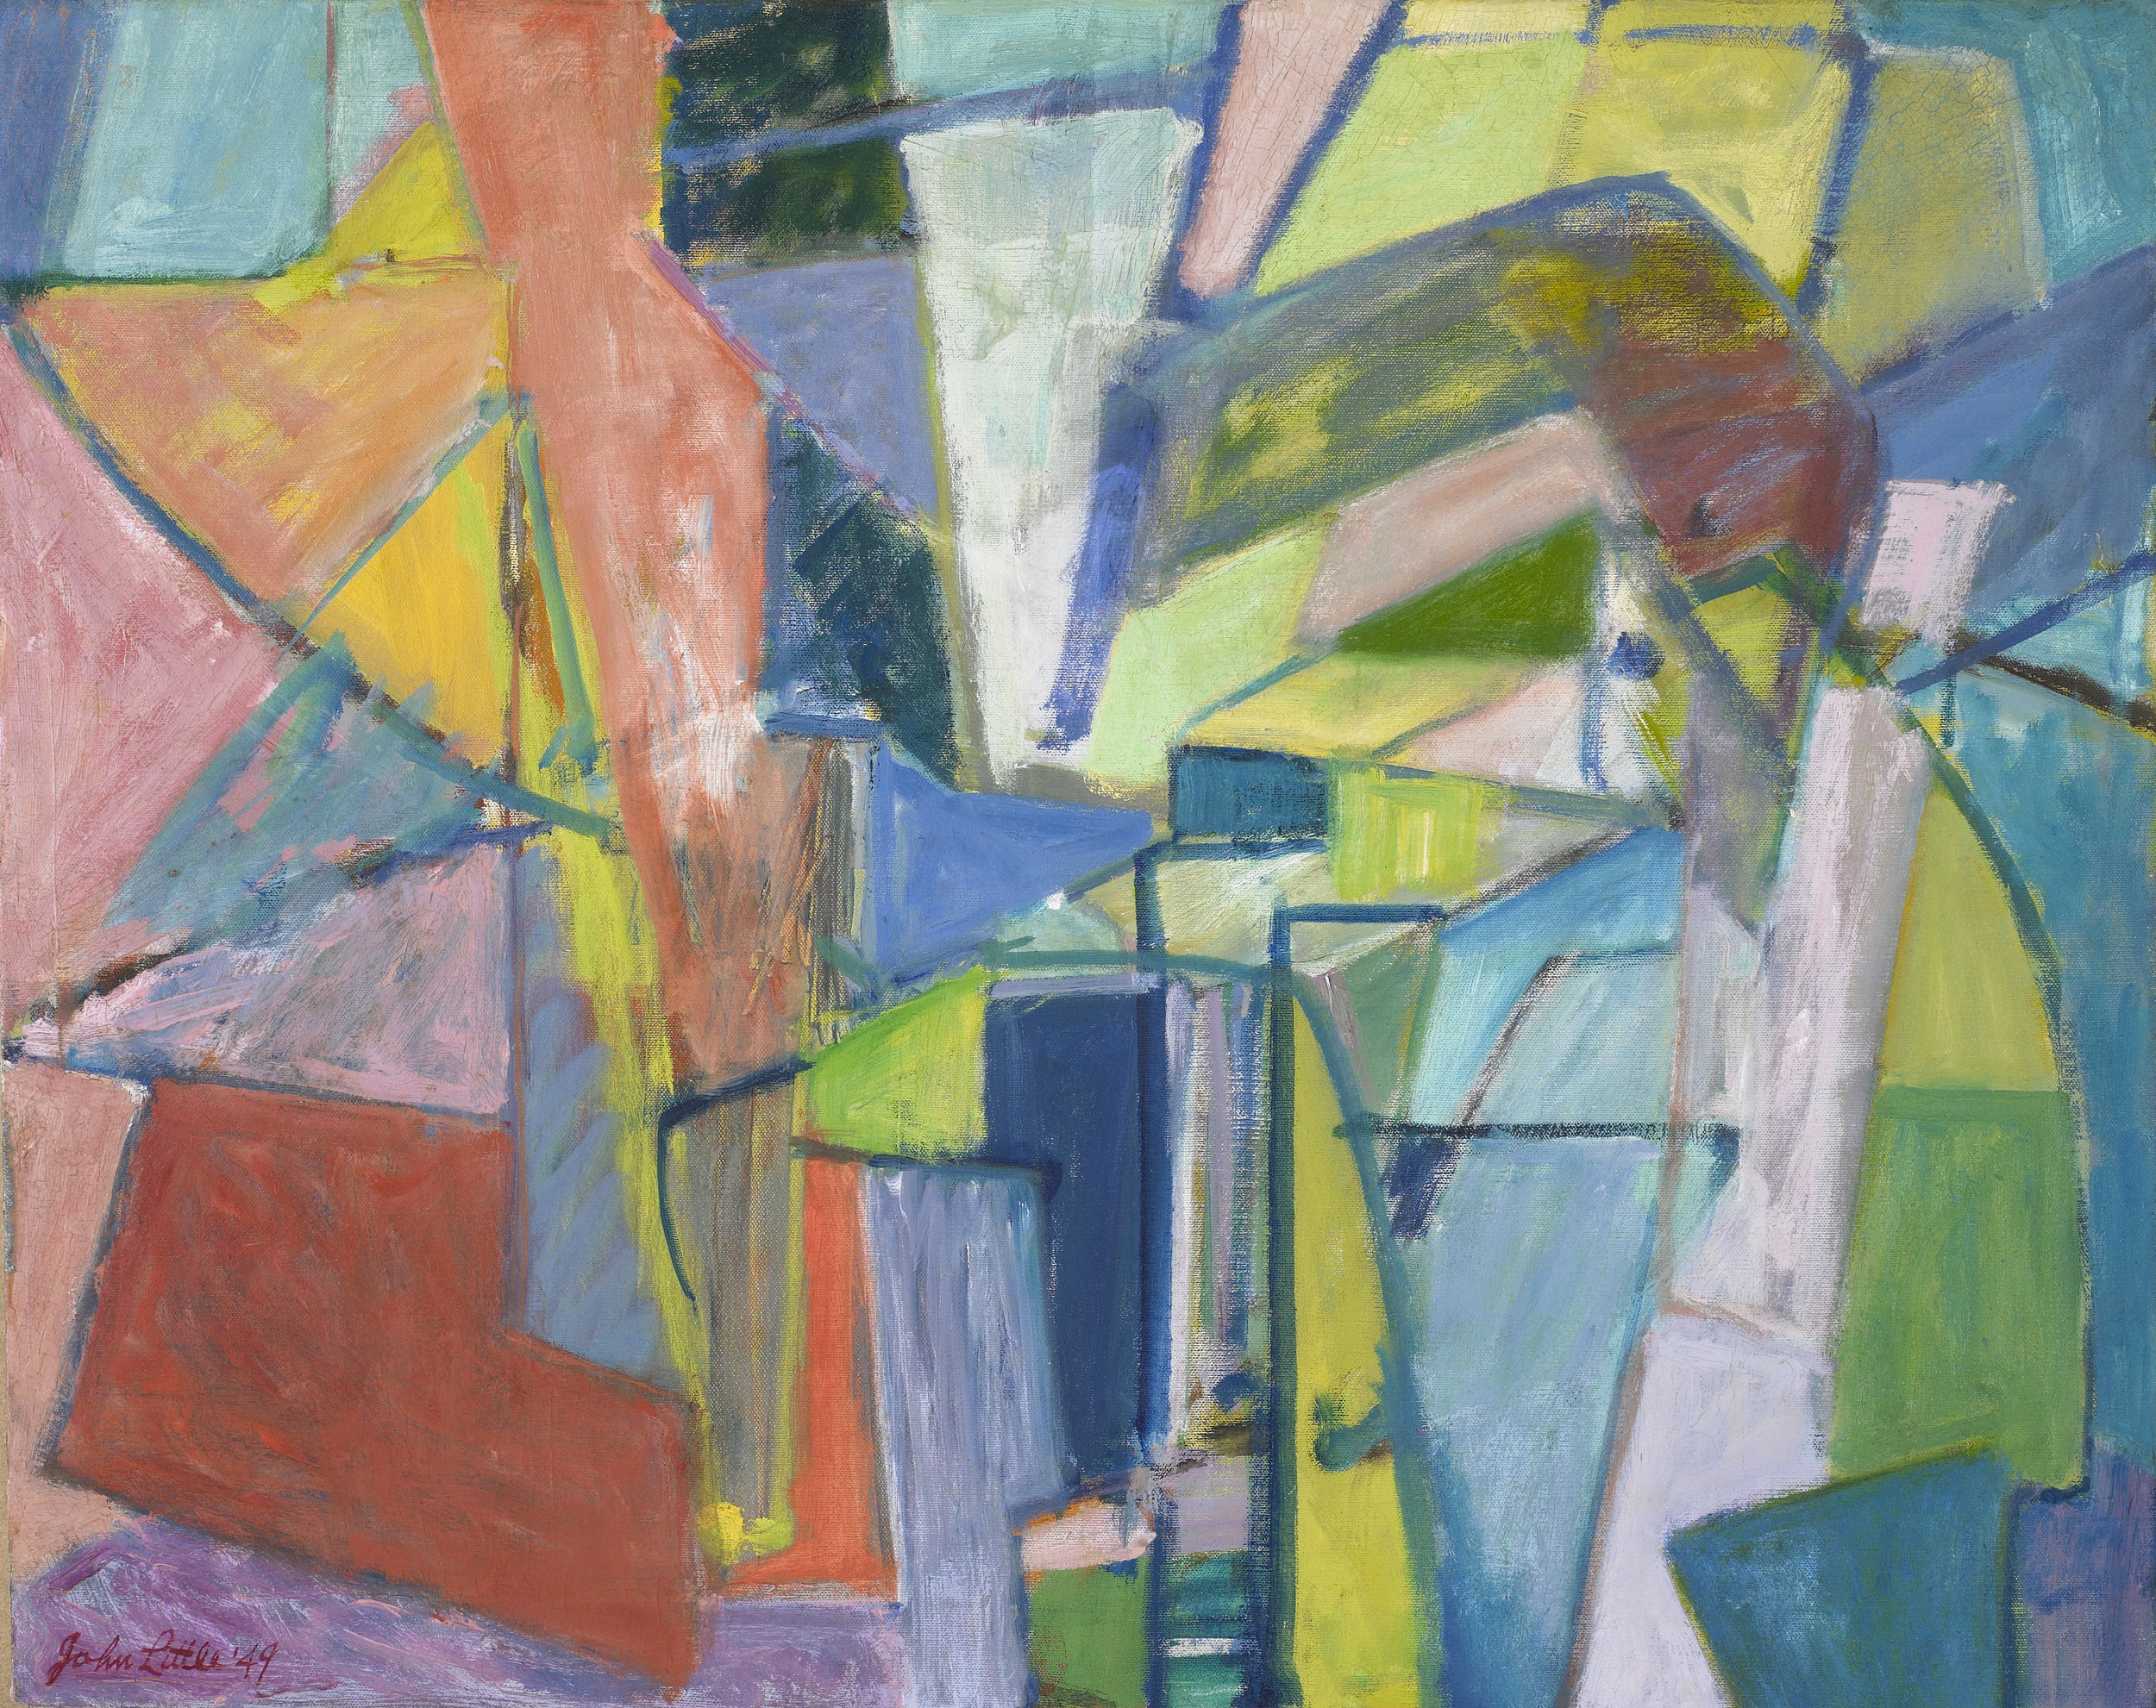 Forrest , Oil on canvas mounted on white wood, 1949, 24 x 30 inches